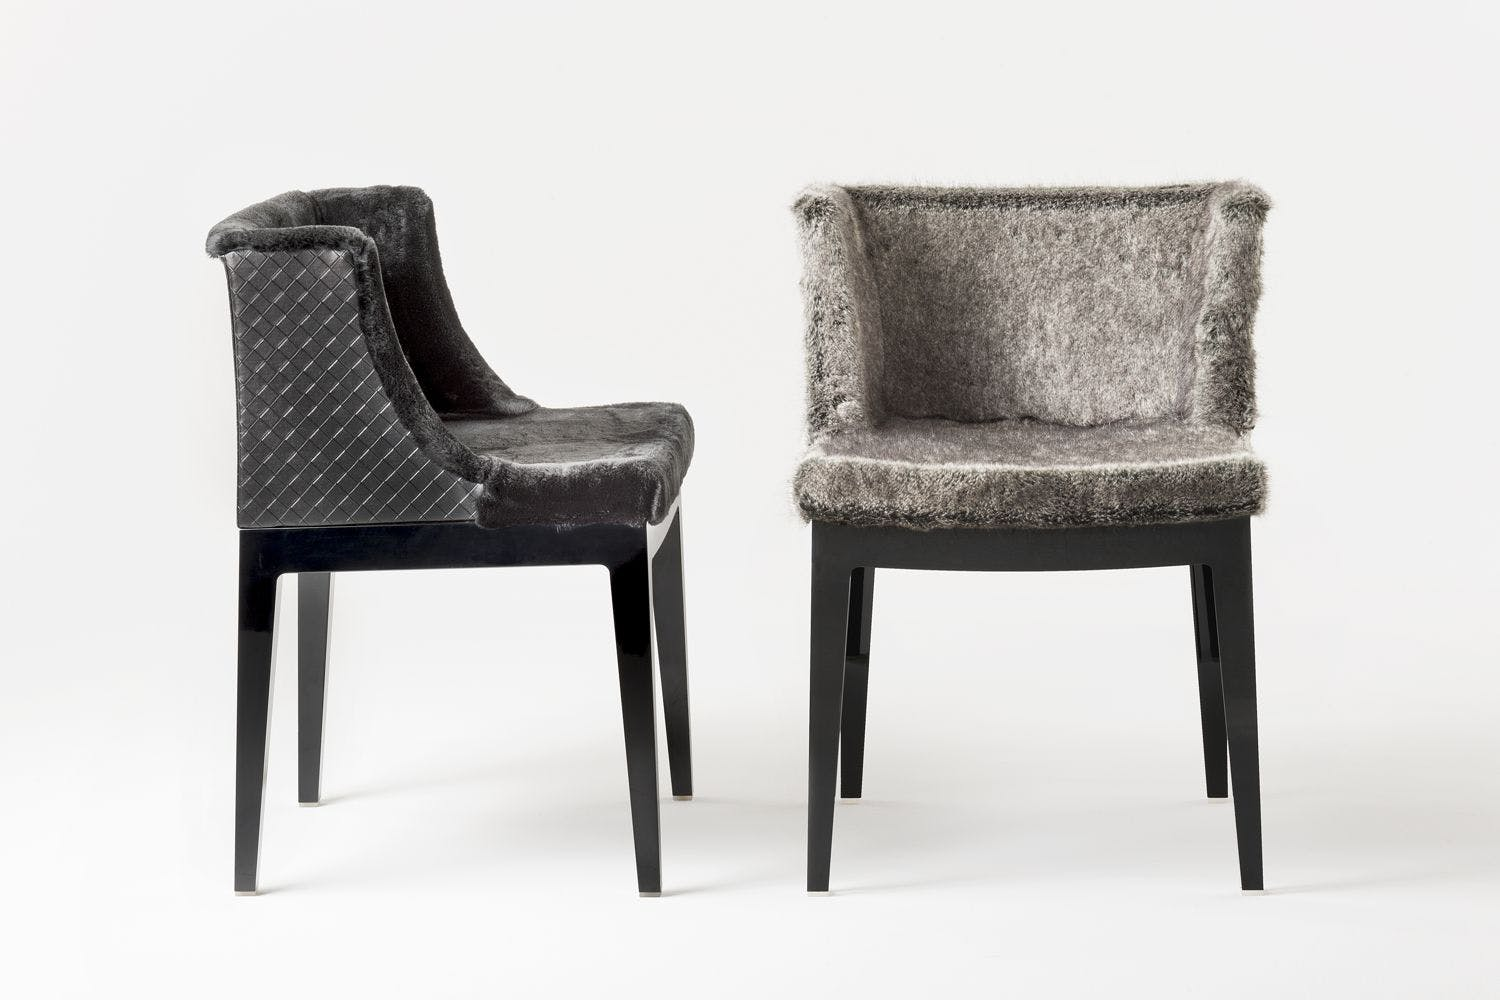 mademoiselle kravitz chair by philippe starck for kartell space